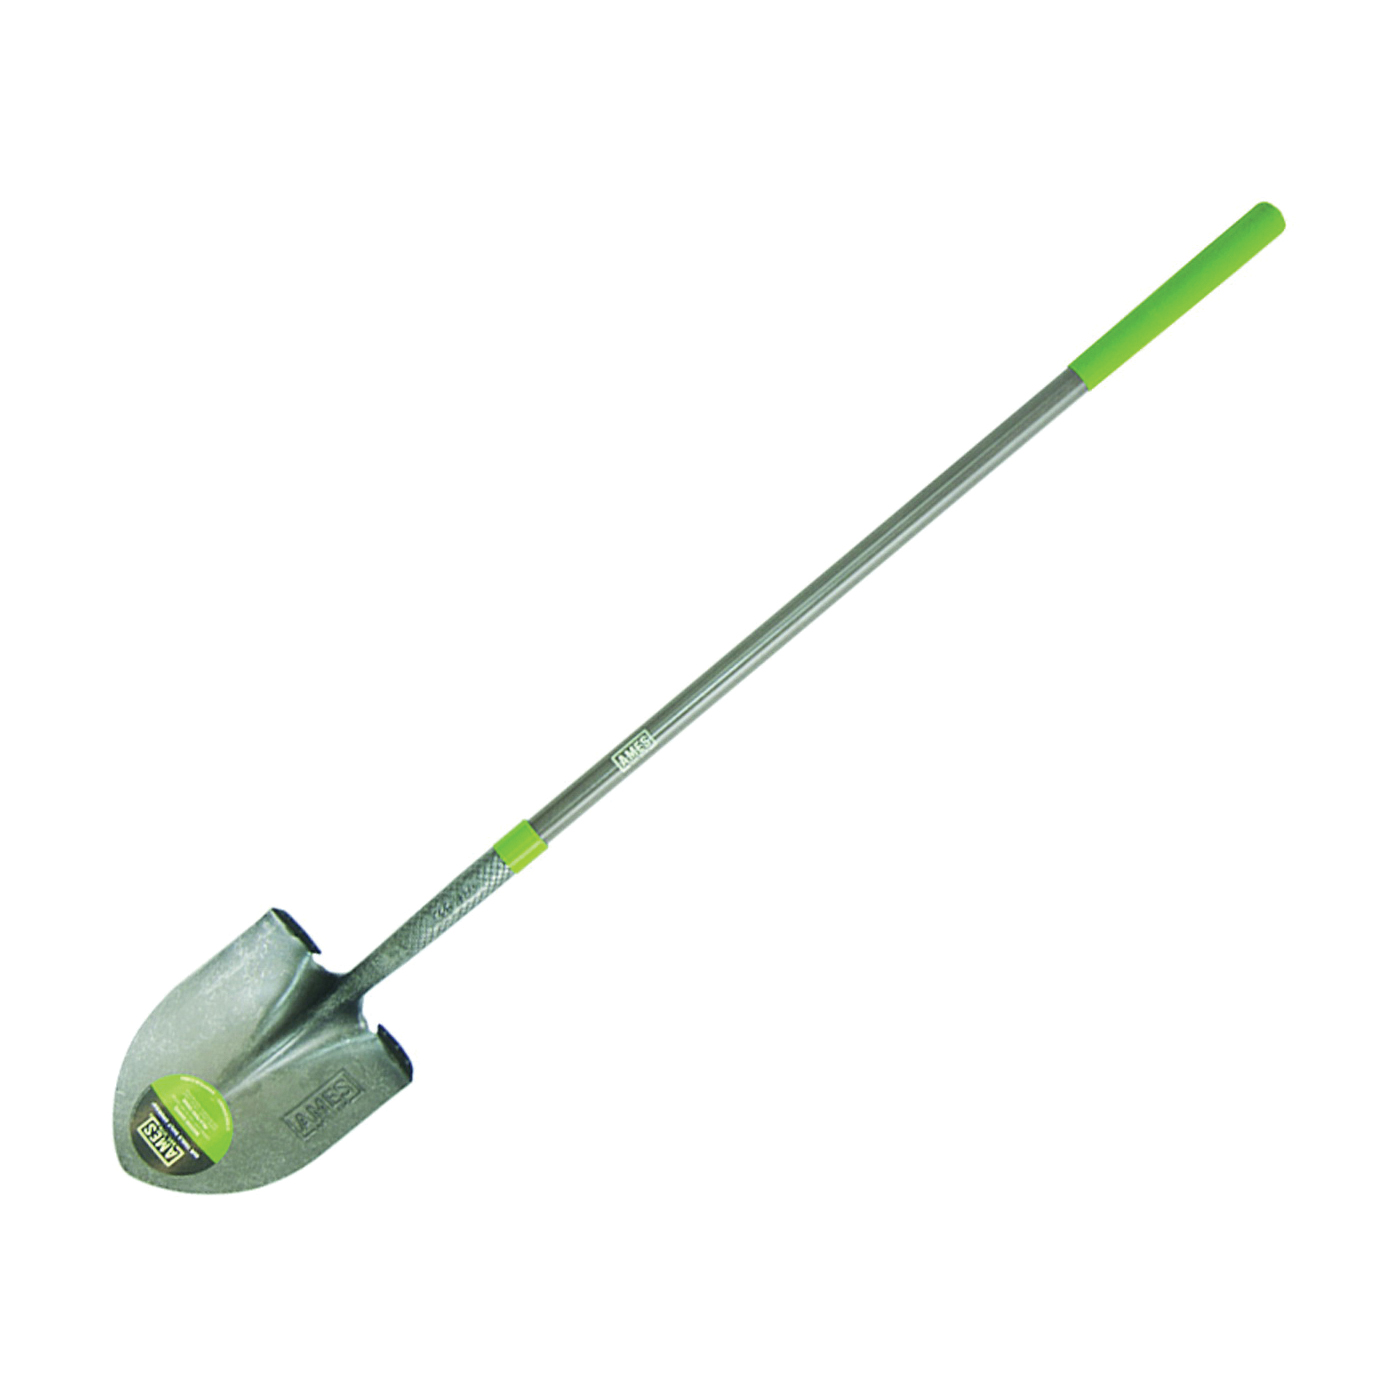 Picture of AMES 25332100 Shovel with Crimp Collar, 8-3/4 in W Blade, Steel Blade, Fiberglass Handle, Long Handle